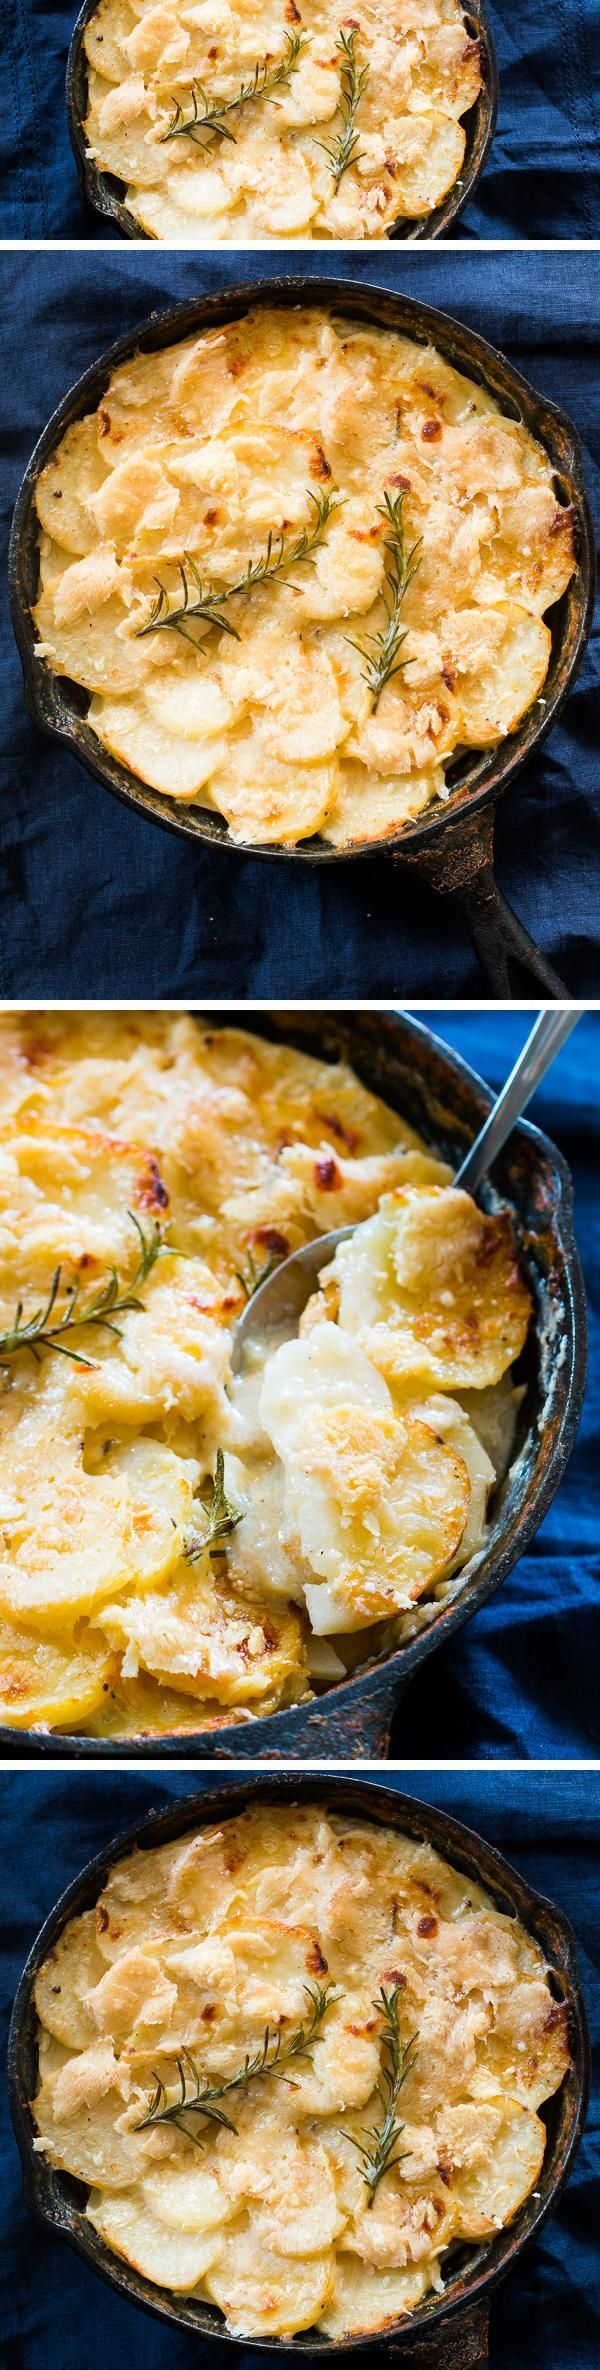 The easiest, creamiest and best ever rosemary potato AU GRATIN recipe you will find. Perfect for holidays, important occasions and when you have guests over!